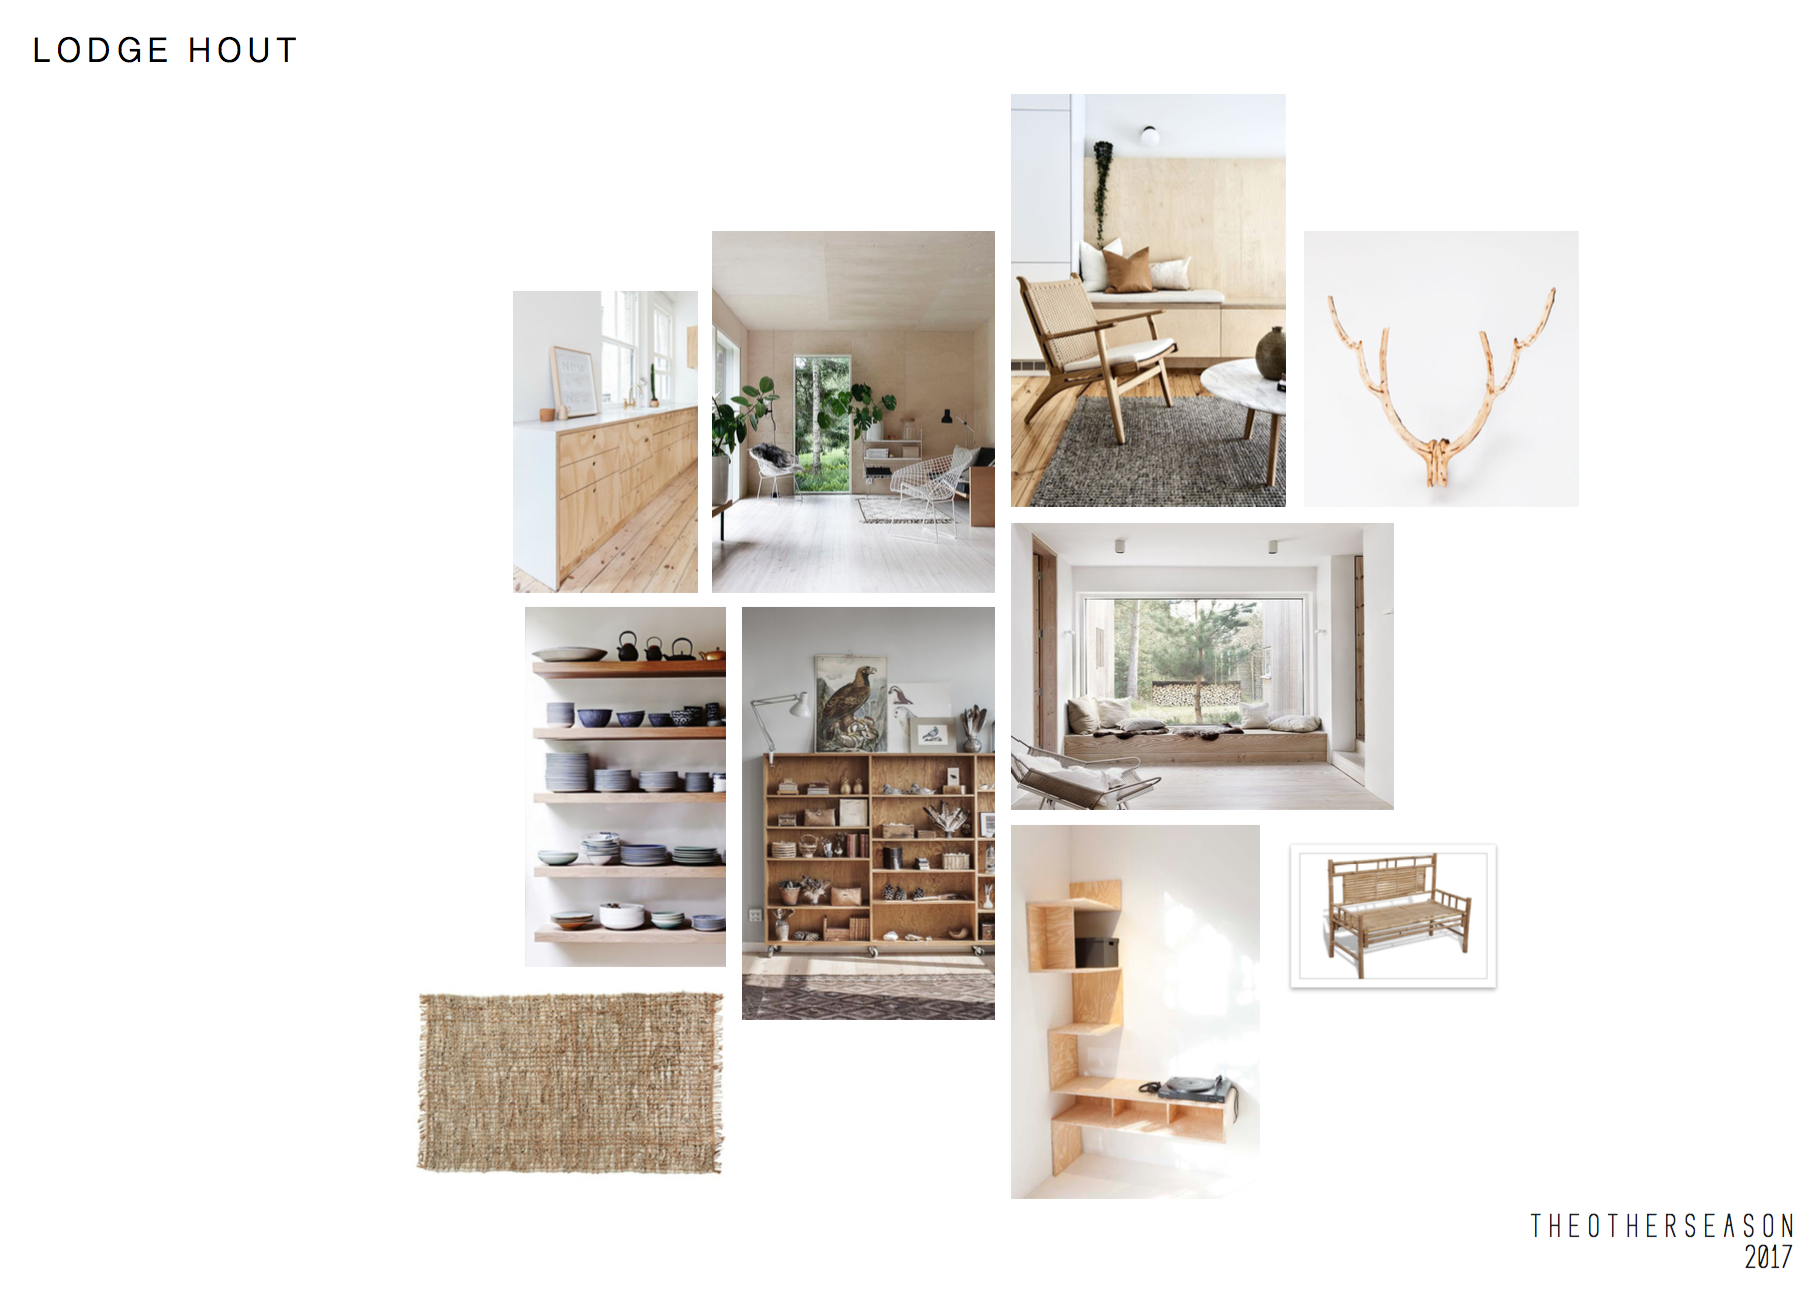 The Other Season - Free Lodge Amsterdam West - concept - styling - interior design